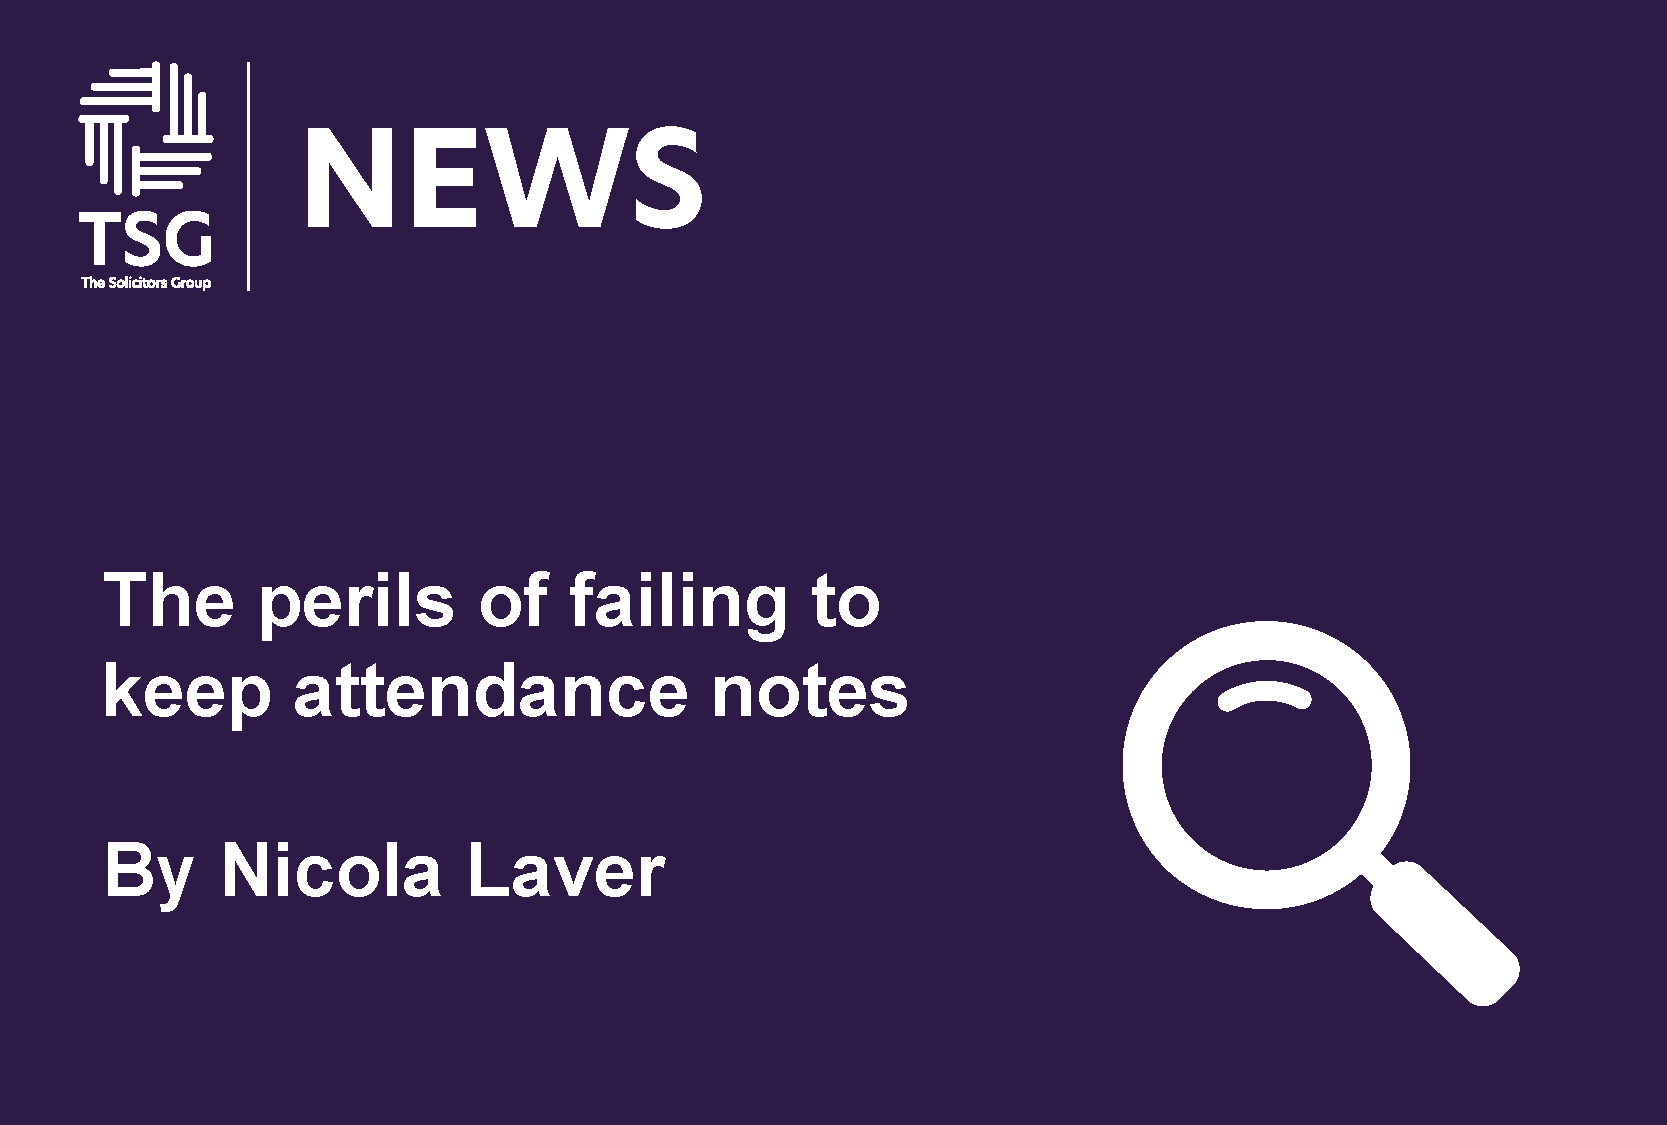 The perils of failing to keep attendance notes